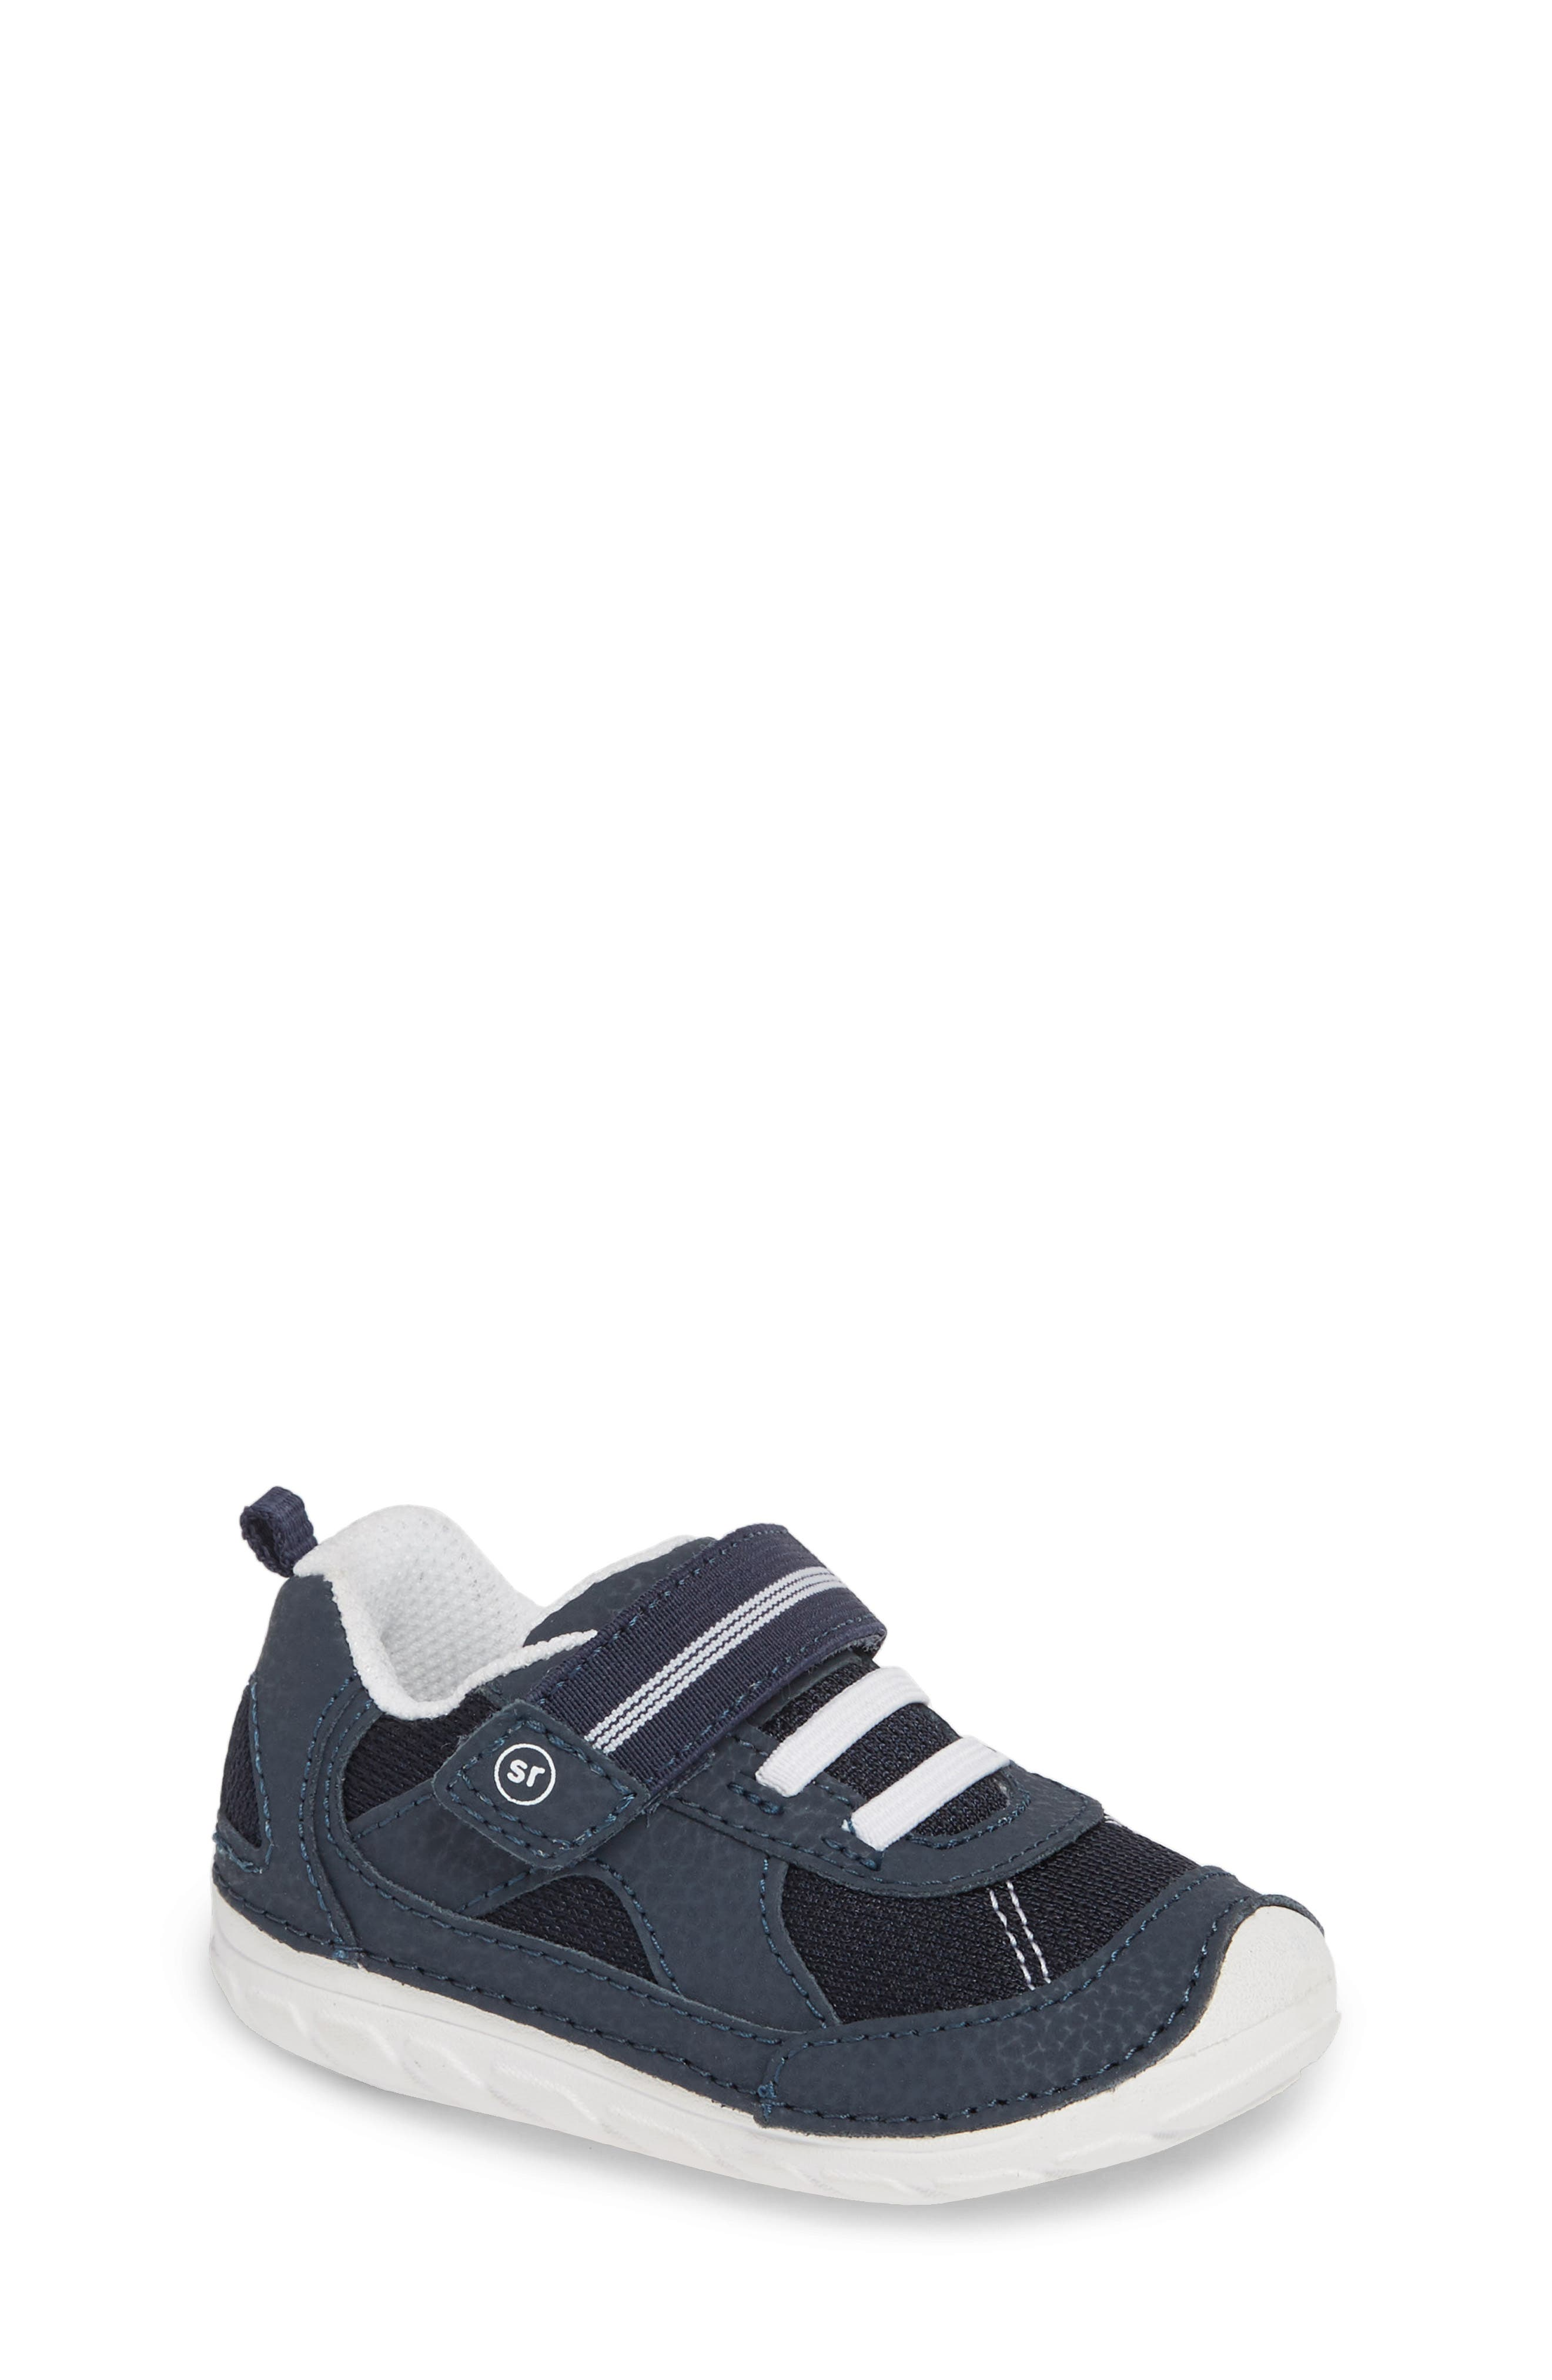 STRIDE RITE Soft Motion<sup>™</sup> Jamie Sneaker, Main, color, NAVY/ WHITE